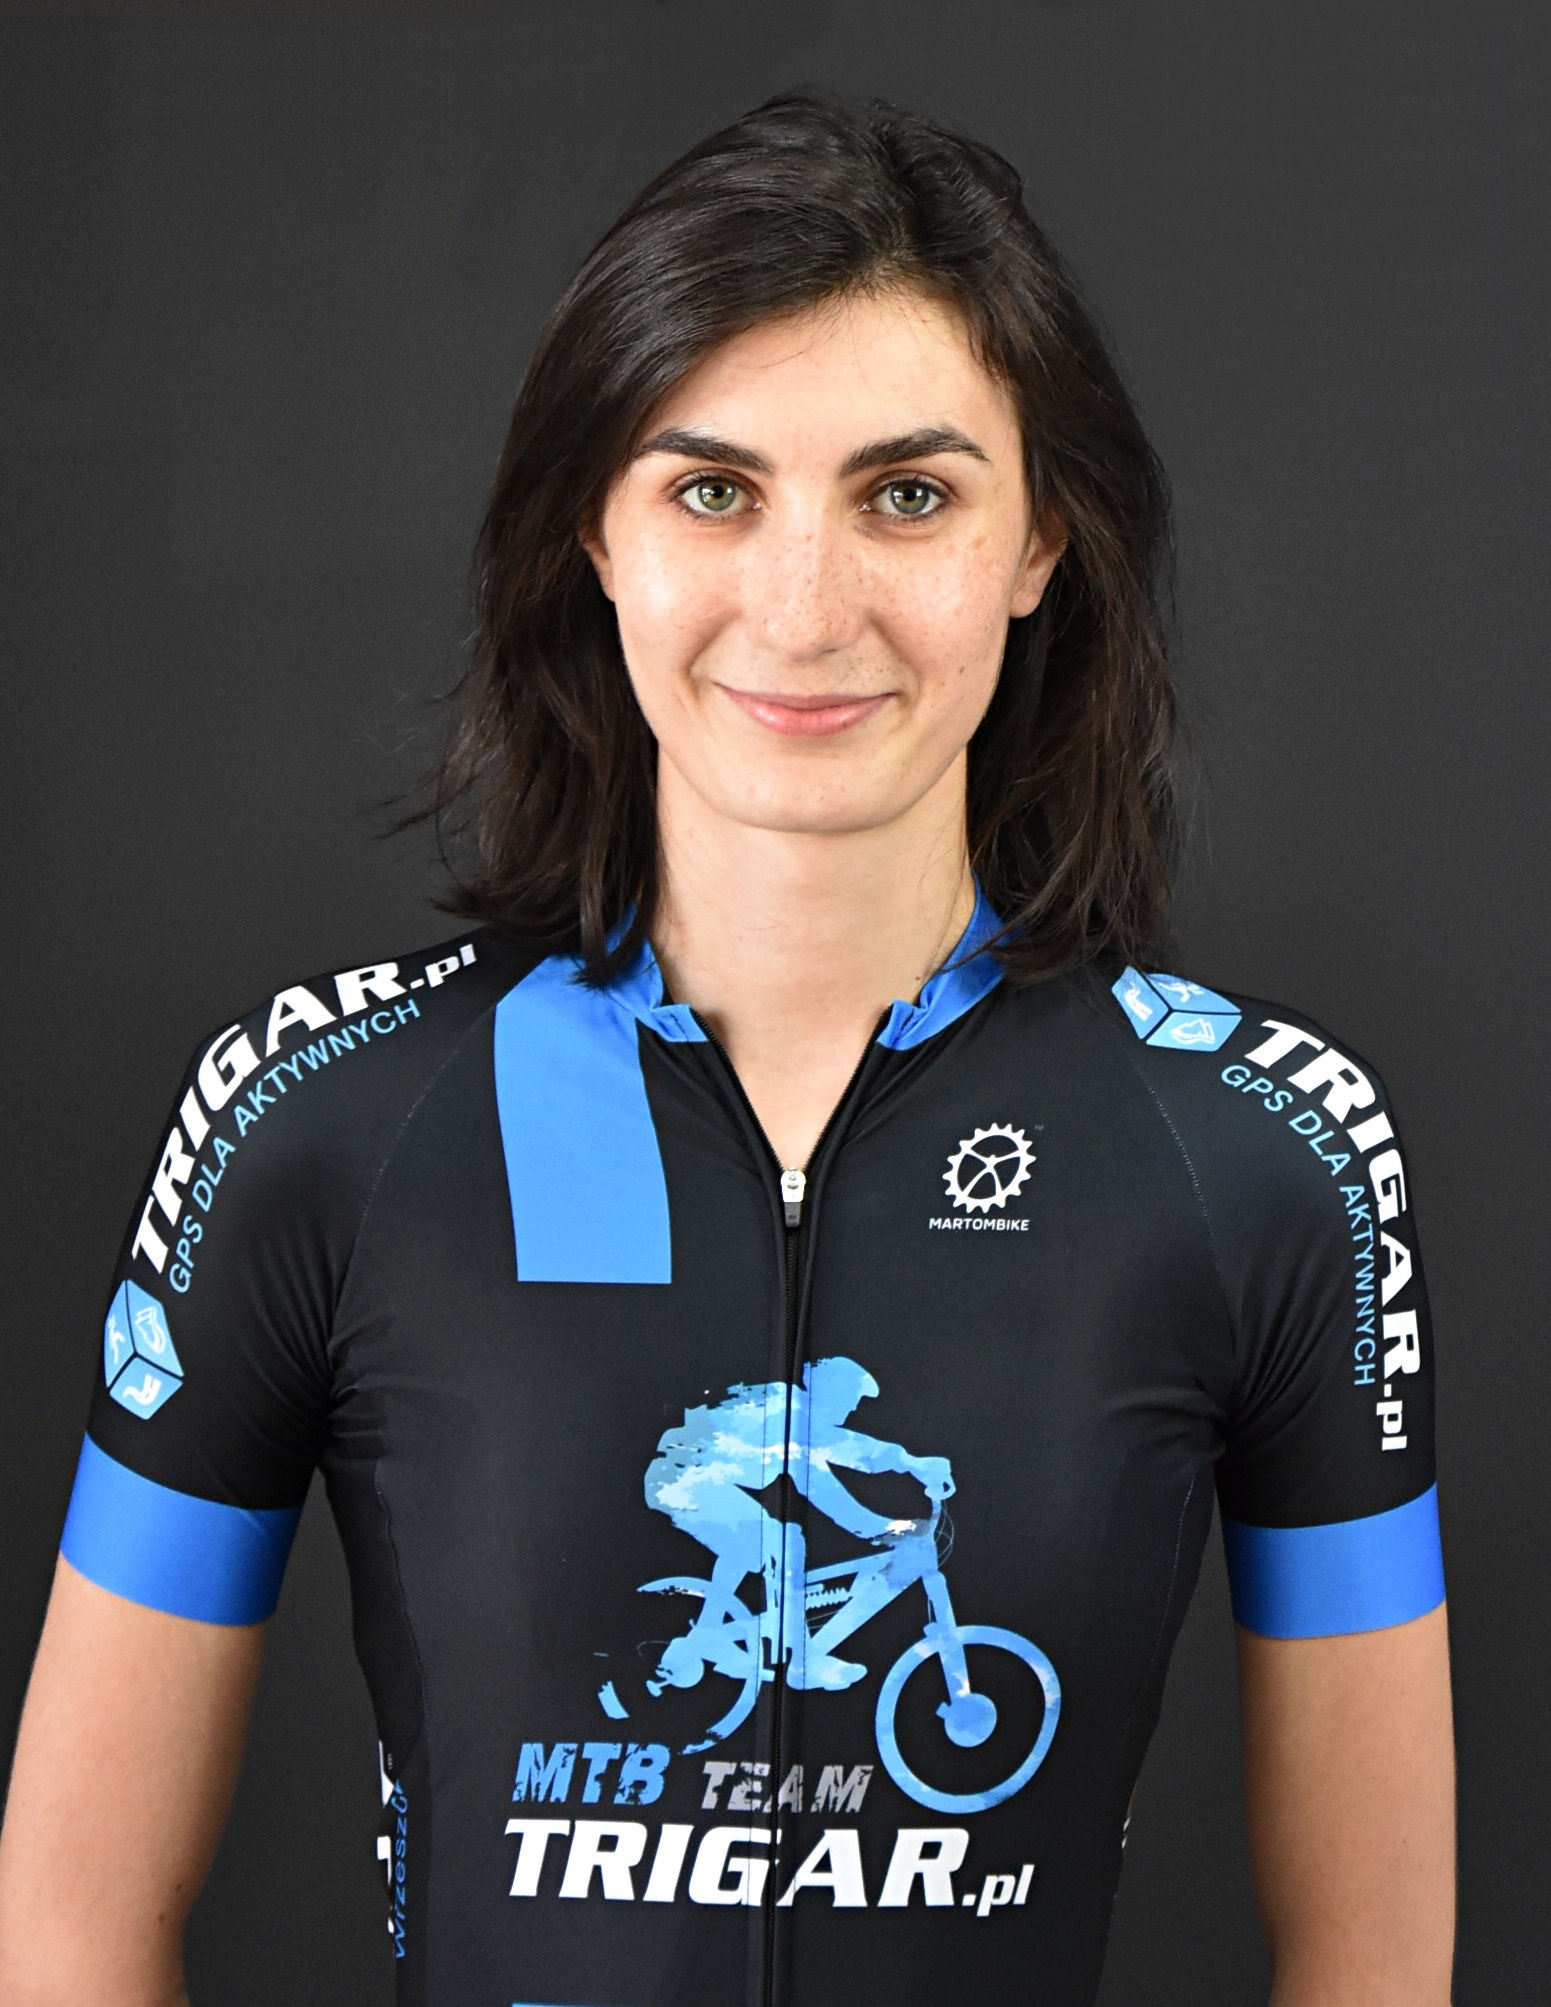 Dominika Trigar.pl MTB Team